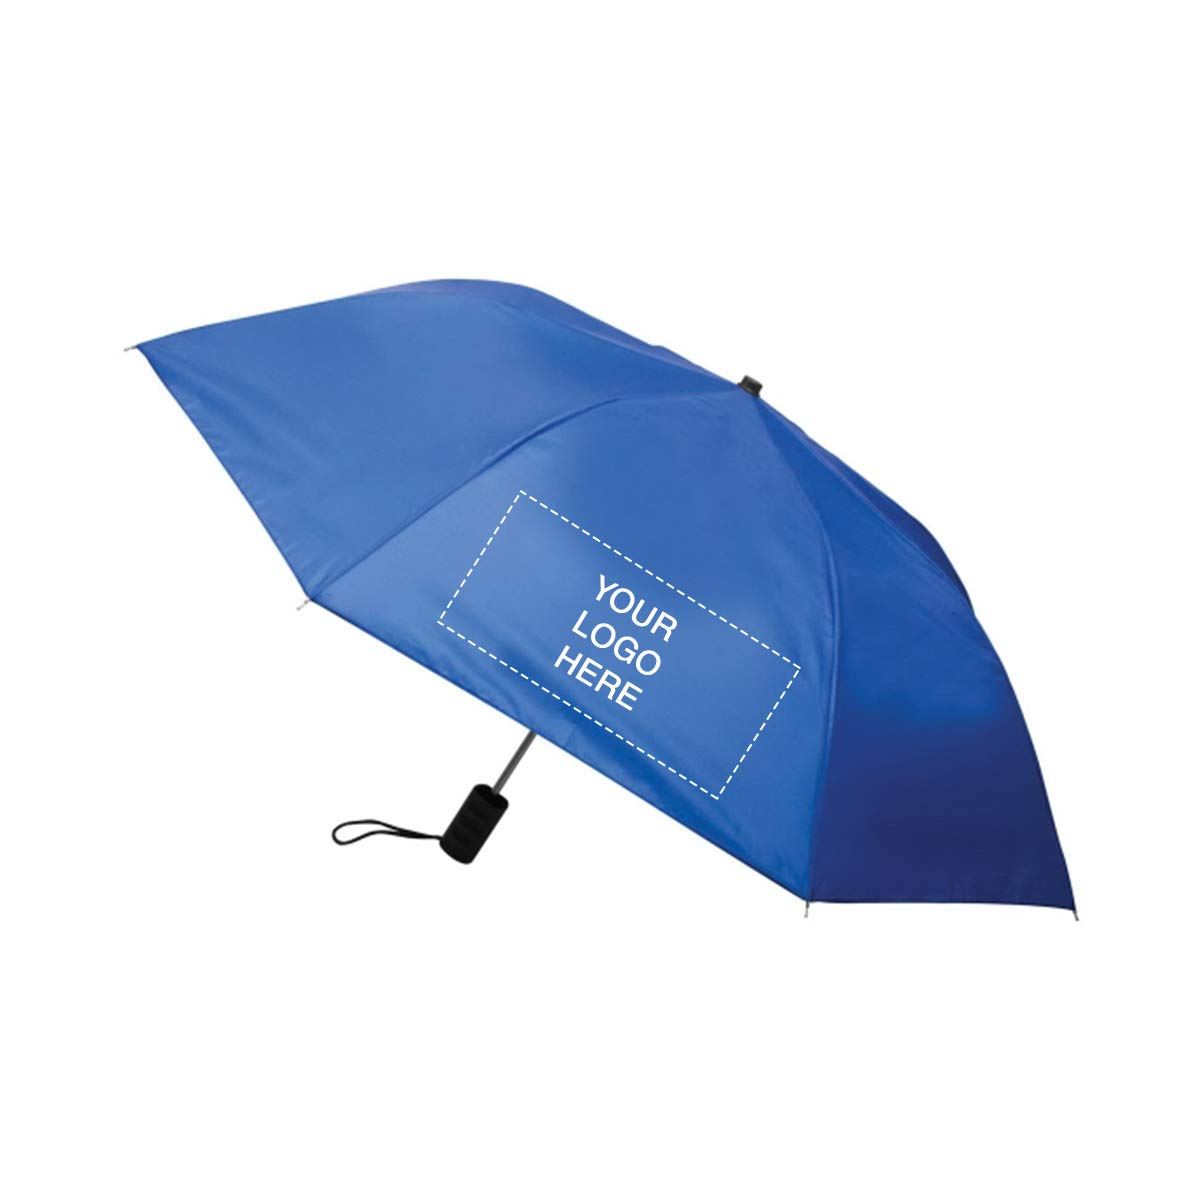 40'' Economy Auto Open Folding Umbrella by Promo Direct | 25 QTY | 10.26 Each | Customization Product Imprinted & Personalized Bulk with Your Custom Logo